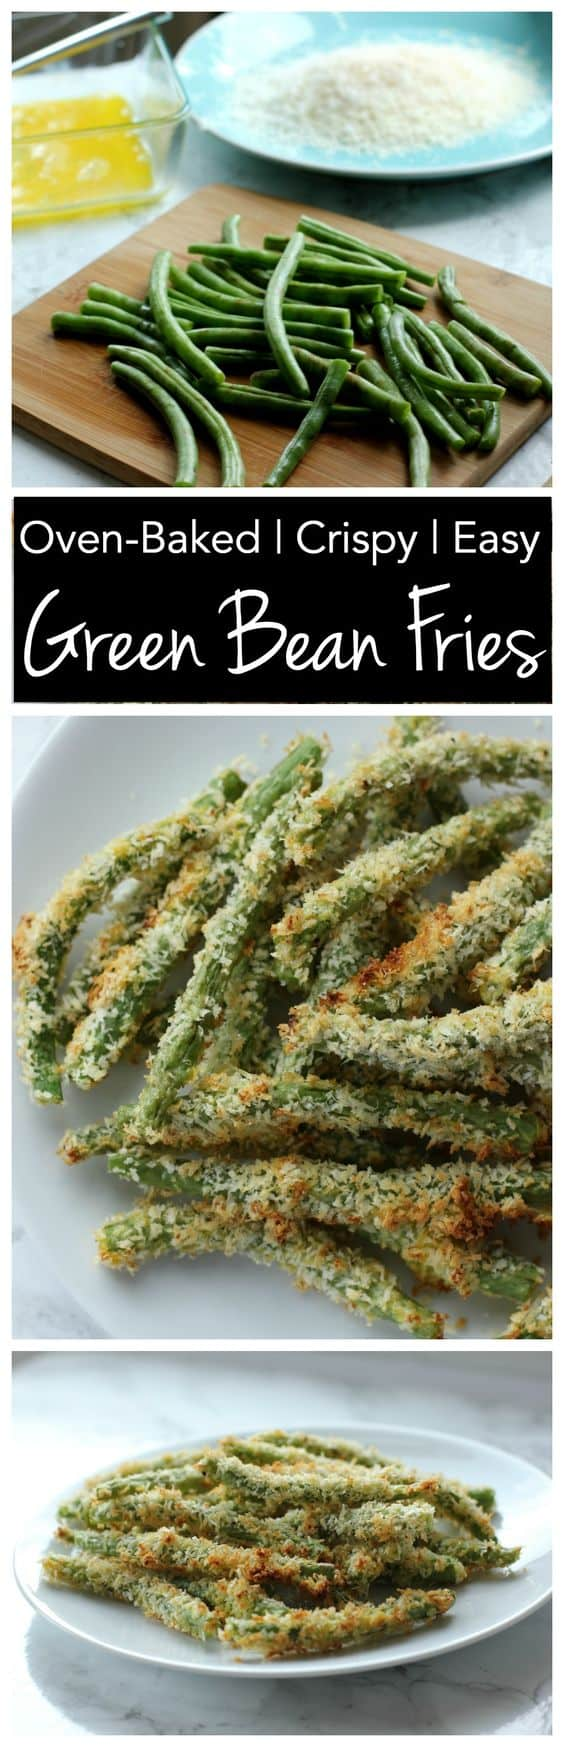 These crispy crunch green bean fries are baked in the oven so they\'re low in fat! Perfect for a healthy side dish!